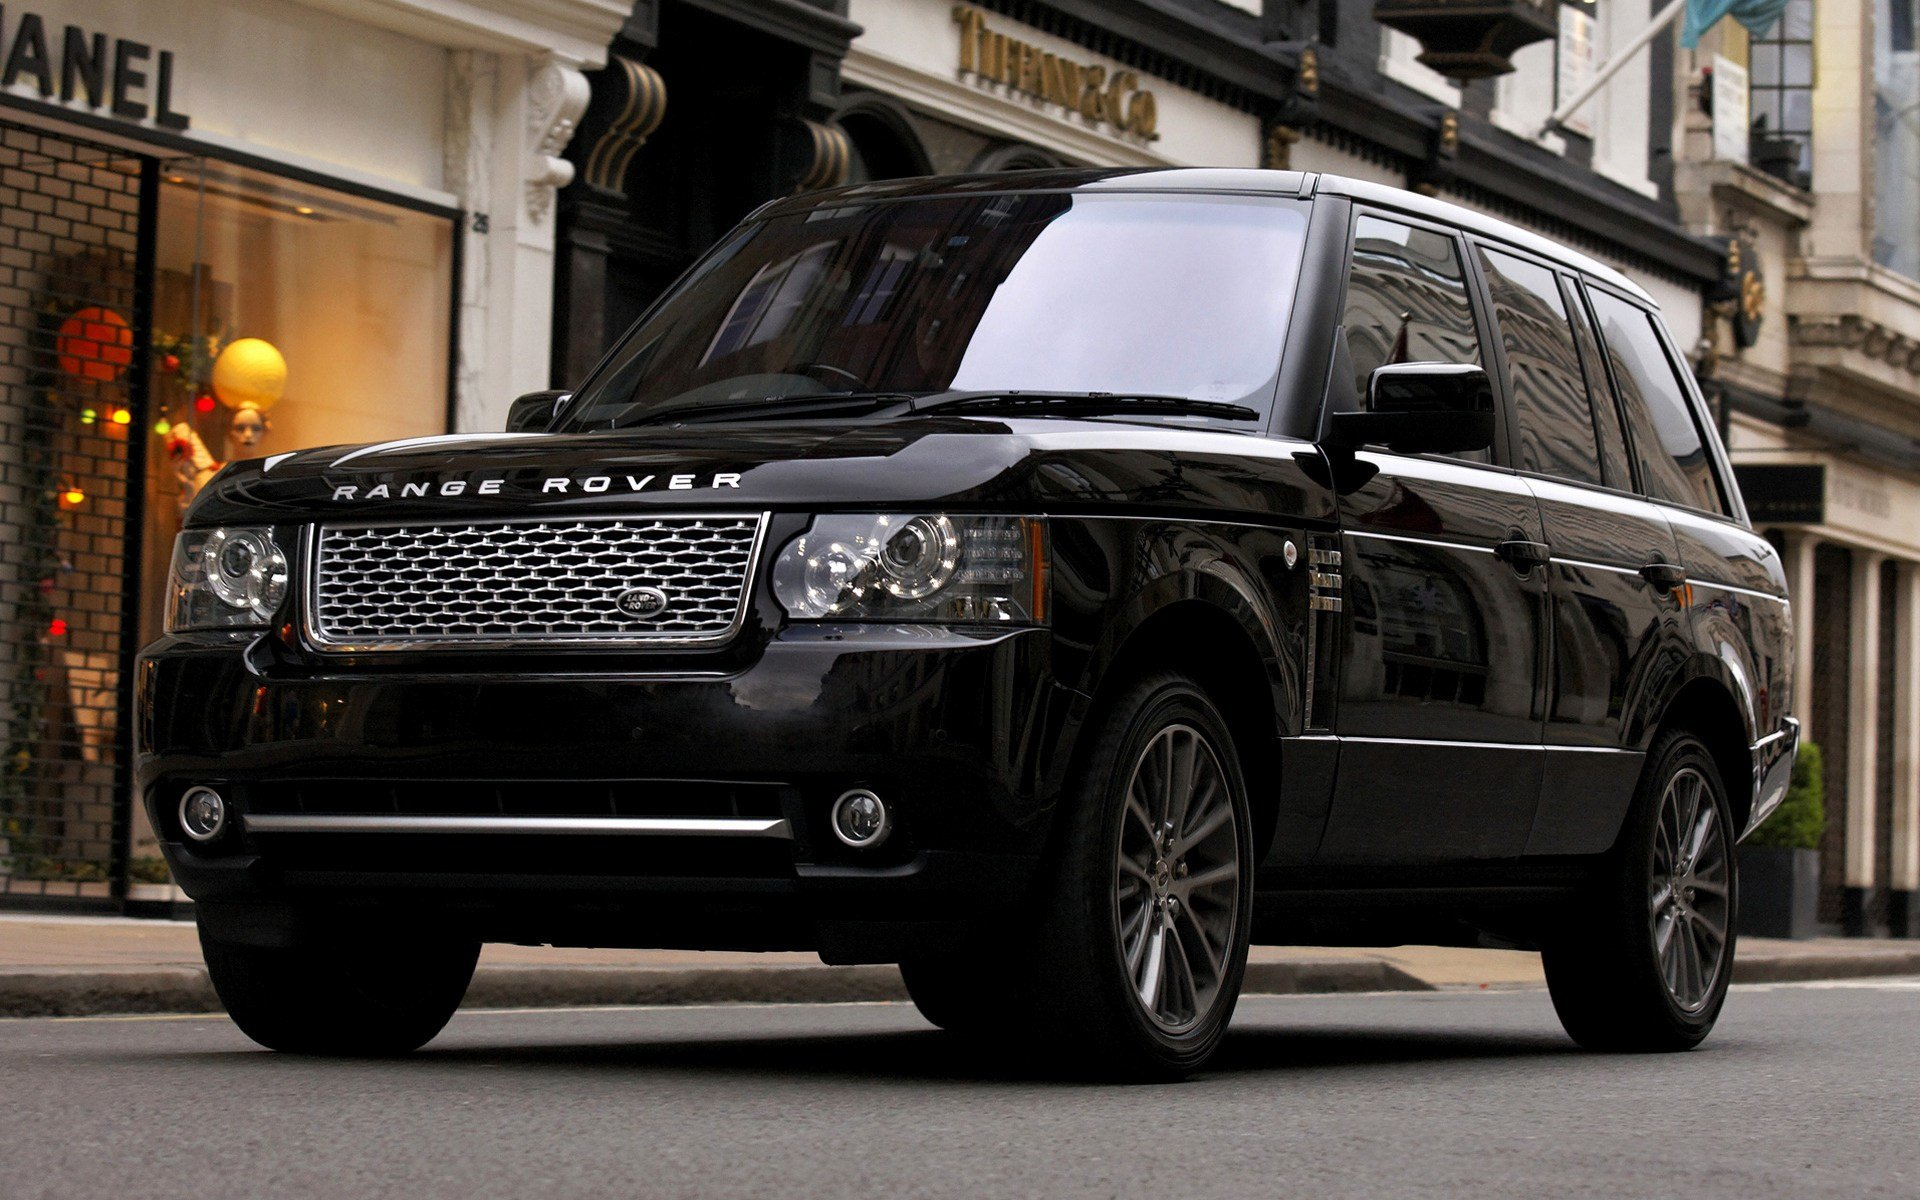 Latest 2010 Range Rover Autobiography Black Uk Wallpapers And Free Download